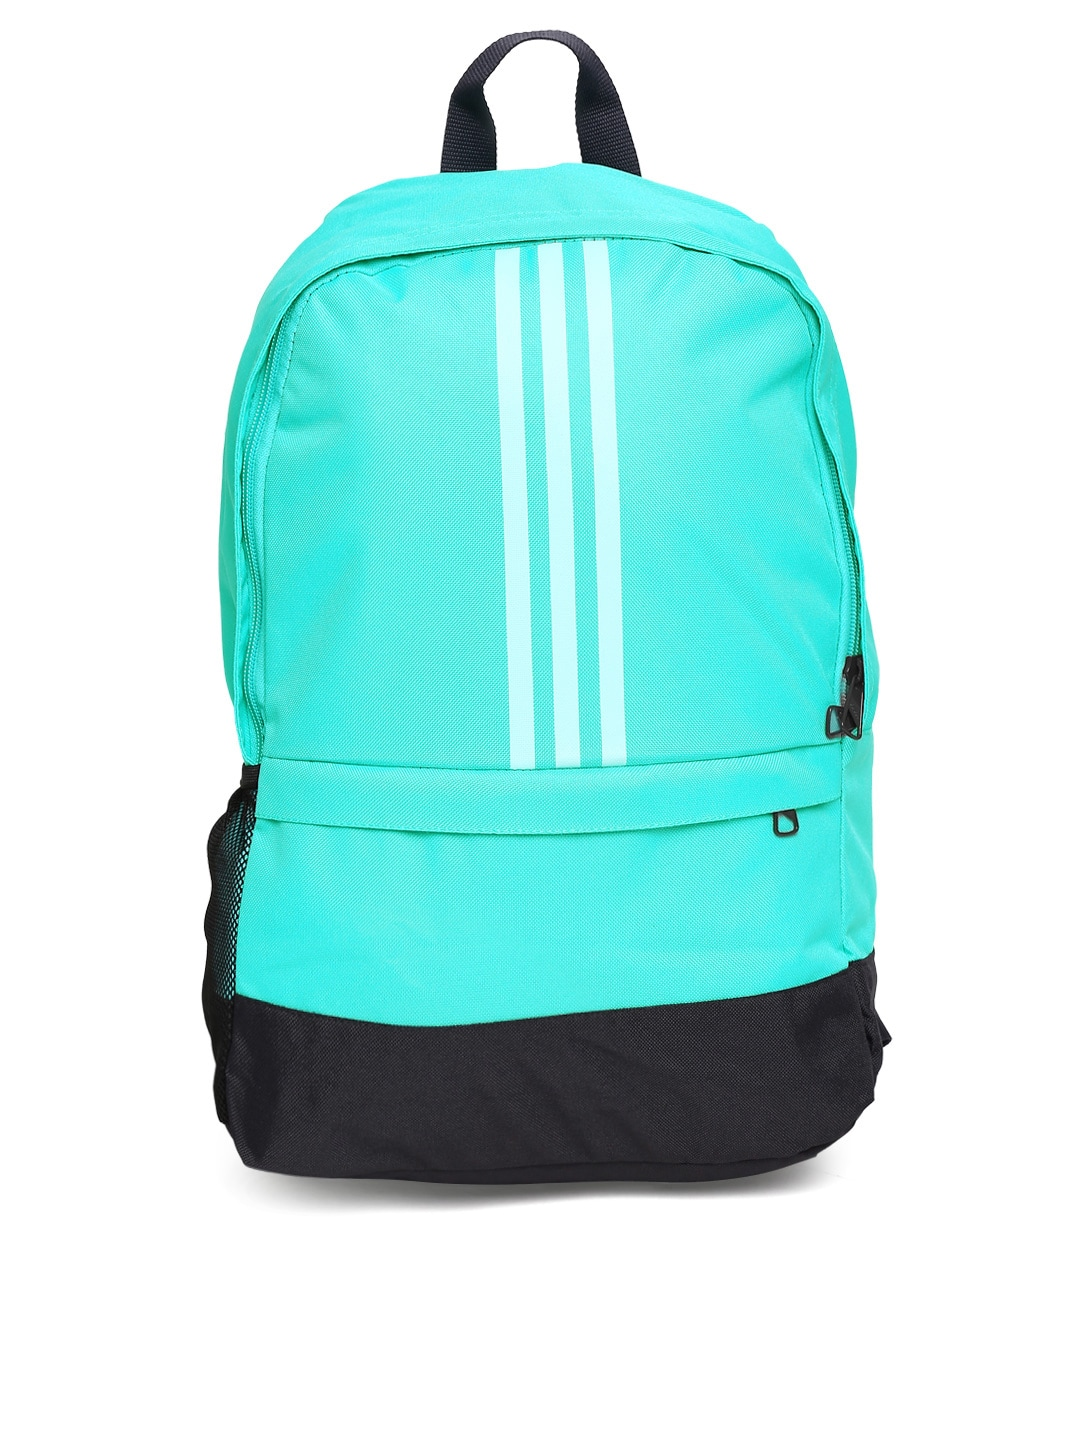 Buy adidas backpacks online india   OFF59% Discounted 796136d28b1e6